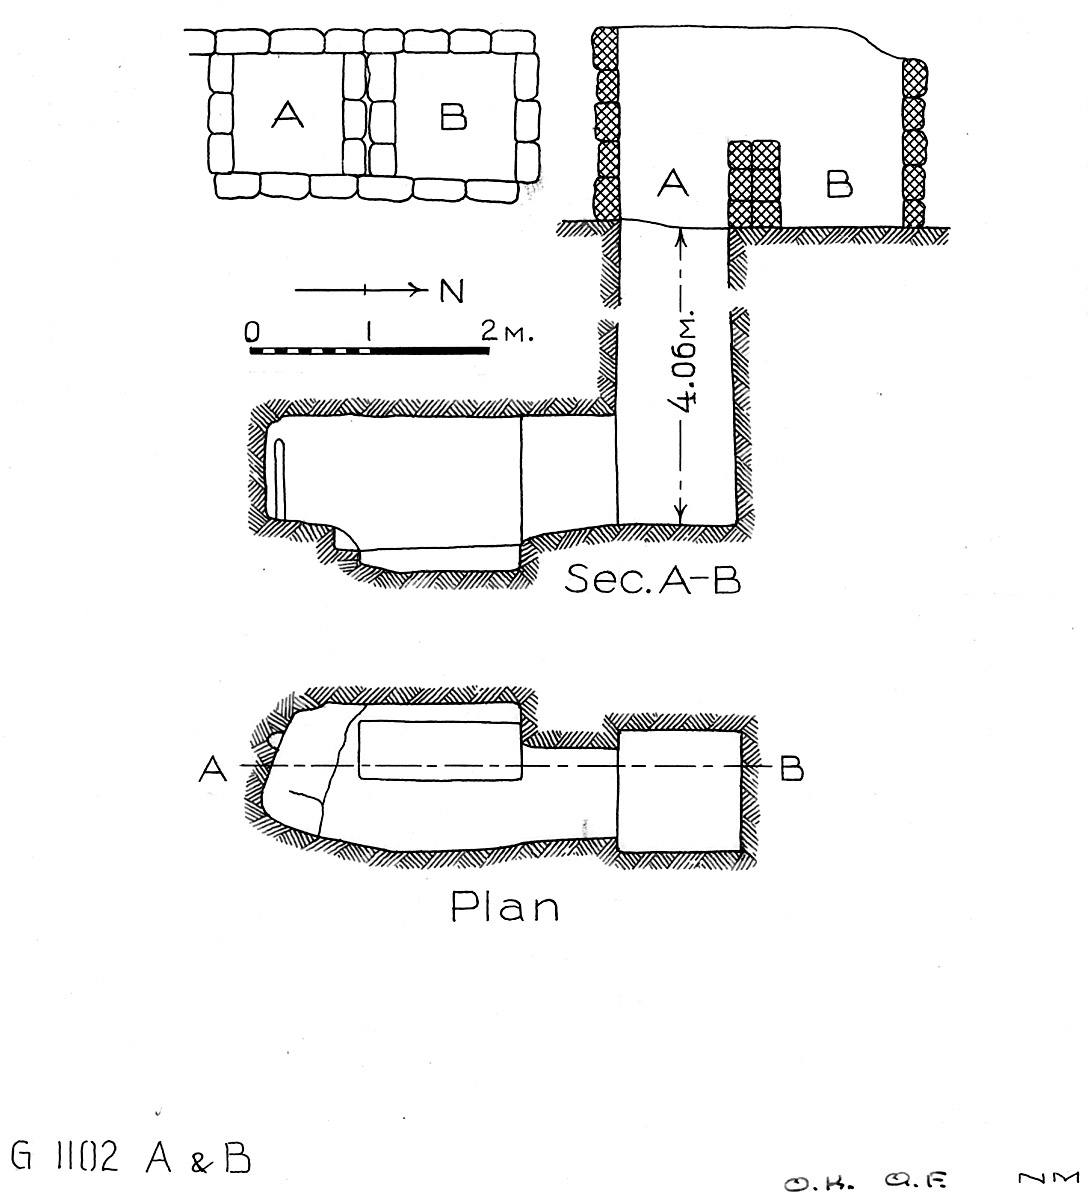 Maps and plans: G 1102, Shaft A and B